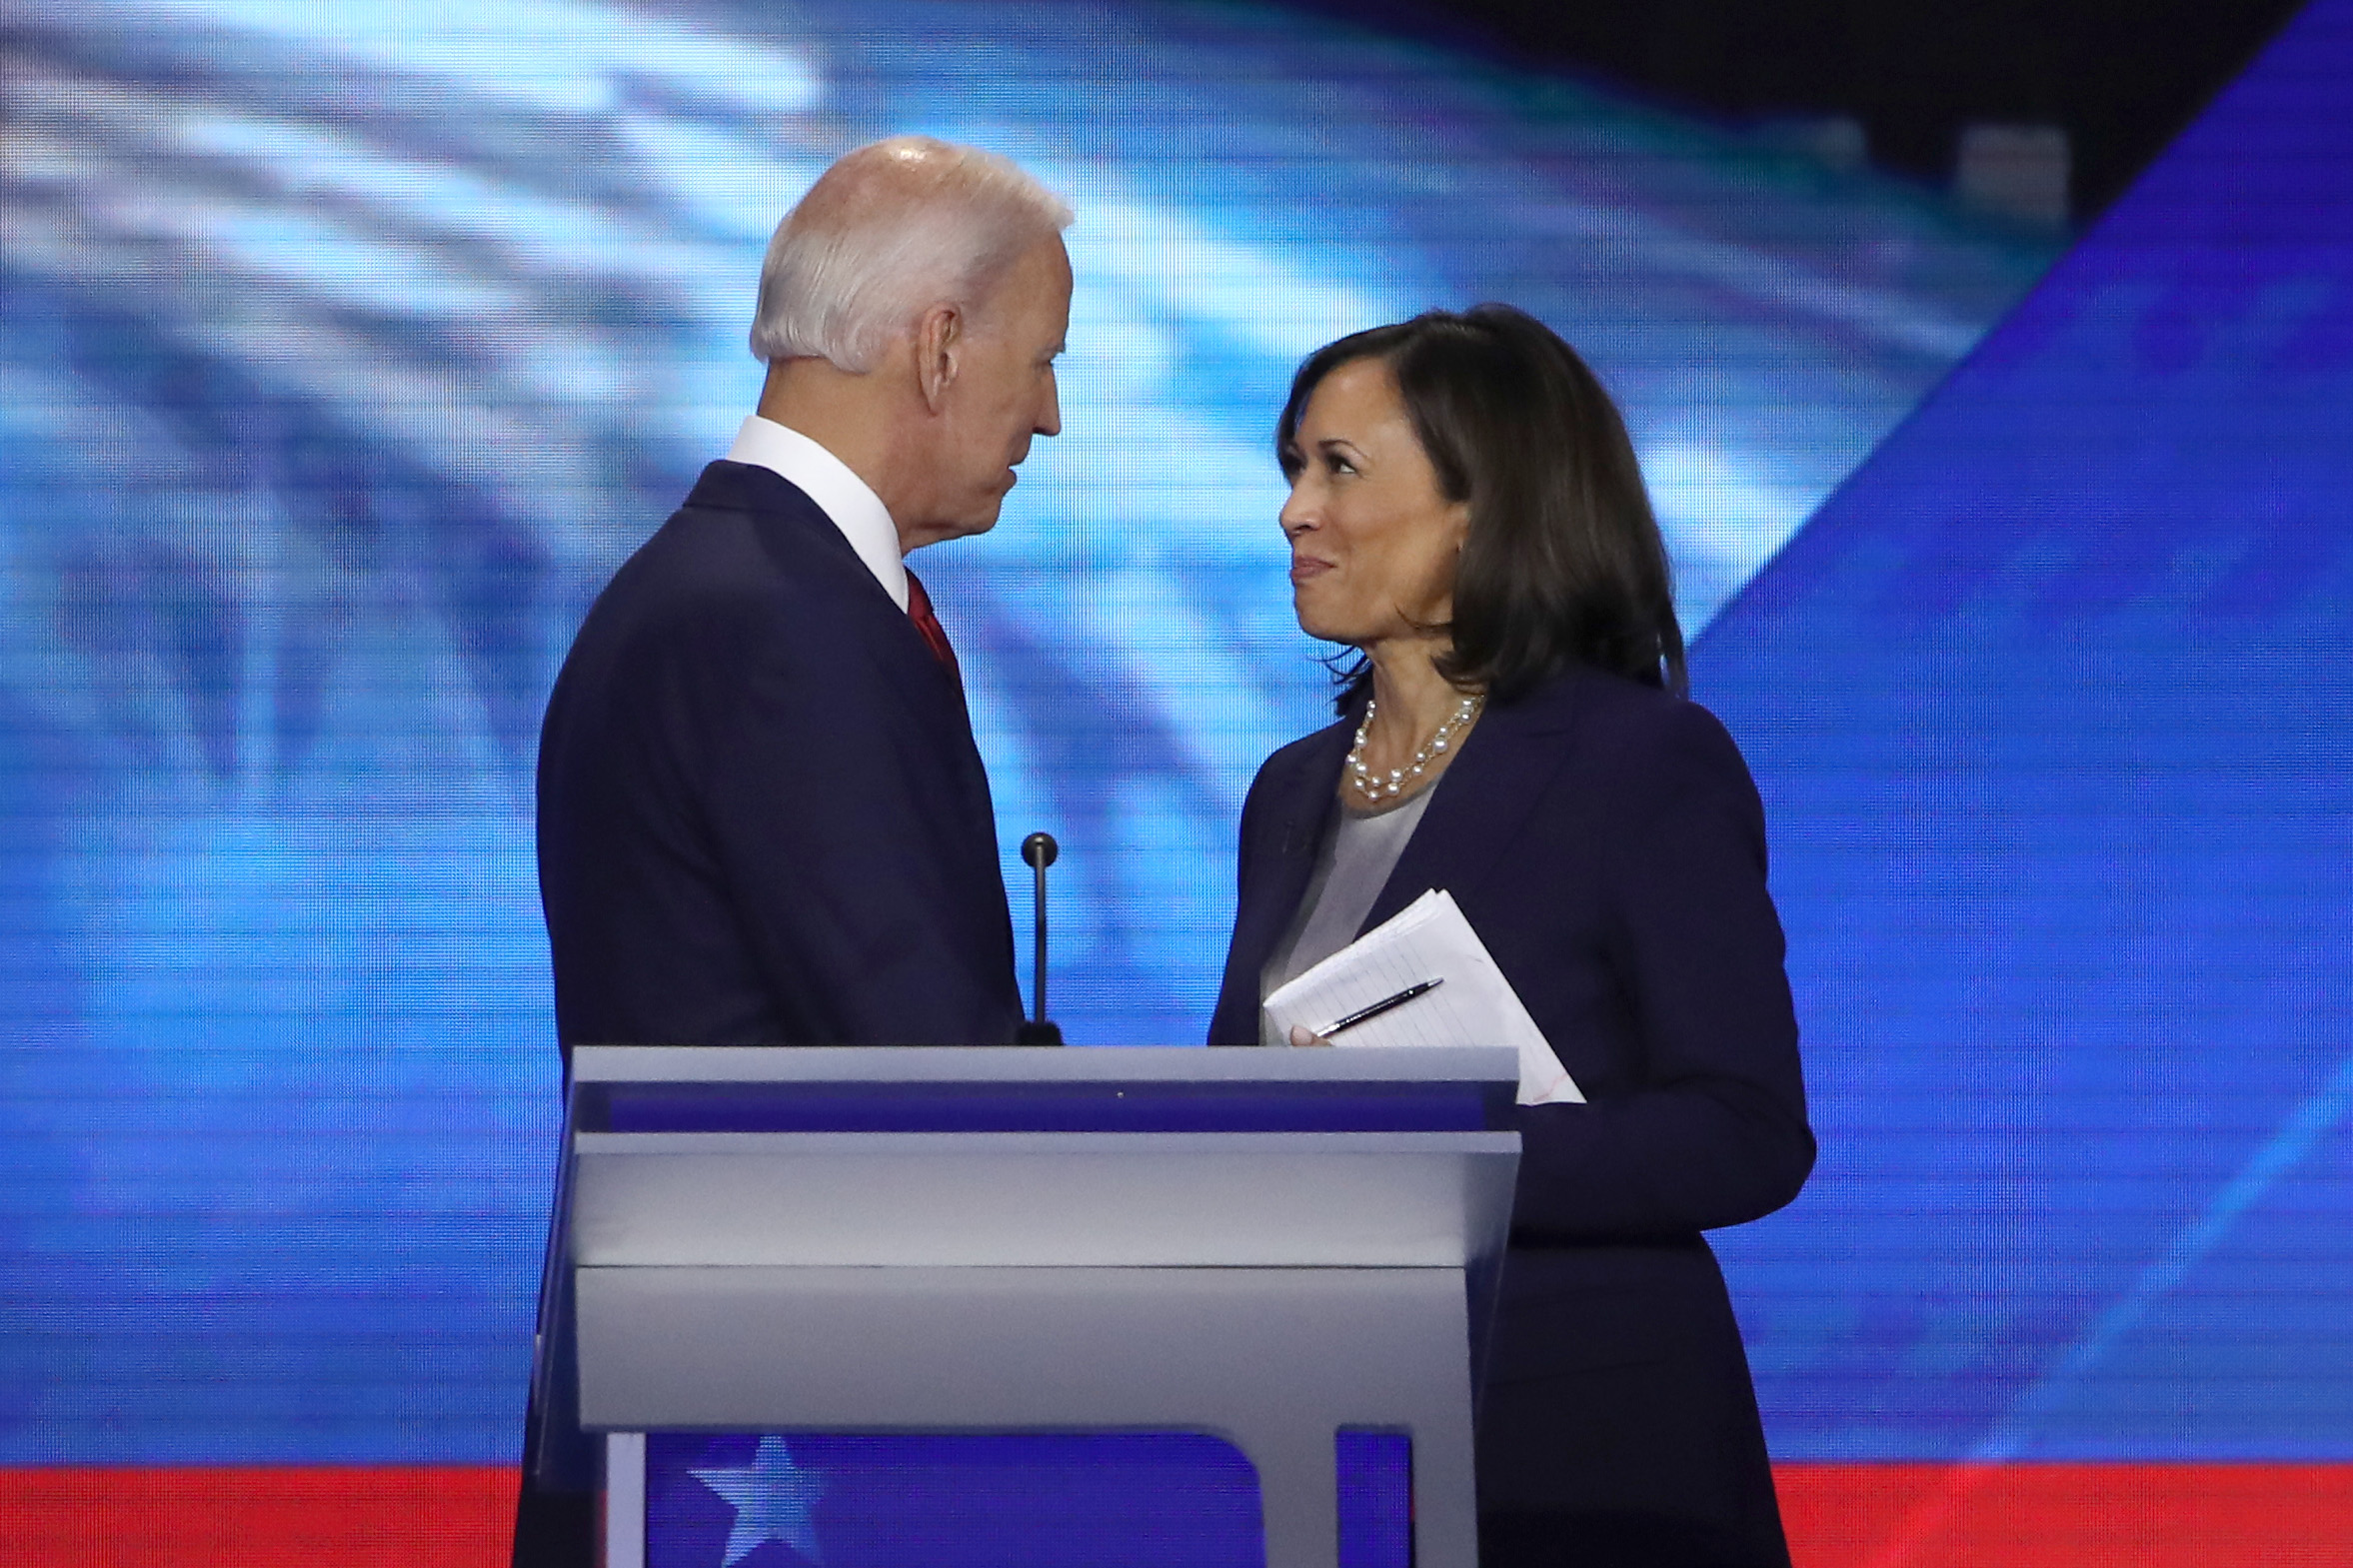 HOUSTON, TEXAS - SEPTEMBER 12: Democratic presidential candidates former Vice President Joe Biden and Sen. Kamala Harris (D-CA) speak after the Democratic Presidential Debate at Texas Southern University's Health and PE Center on September 12, 2019 in Houston, Texas. Ten Democratic presidential hopefuls were chosen from the larger field of candidates to participate in the debate hosted by ABC News in partnership with Univision. (Photo by Win McNamee/Getty Images)